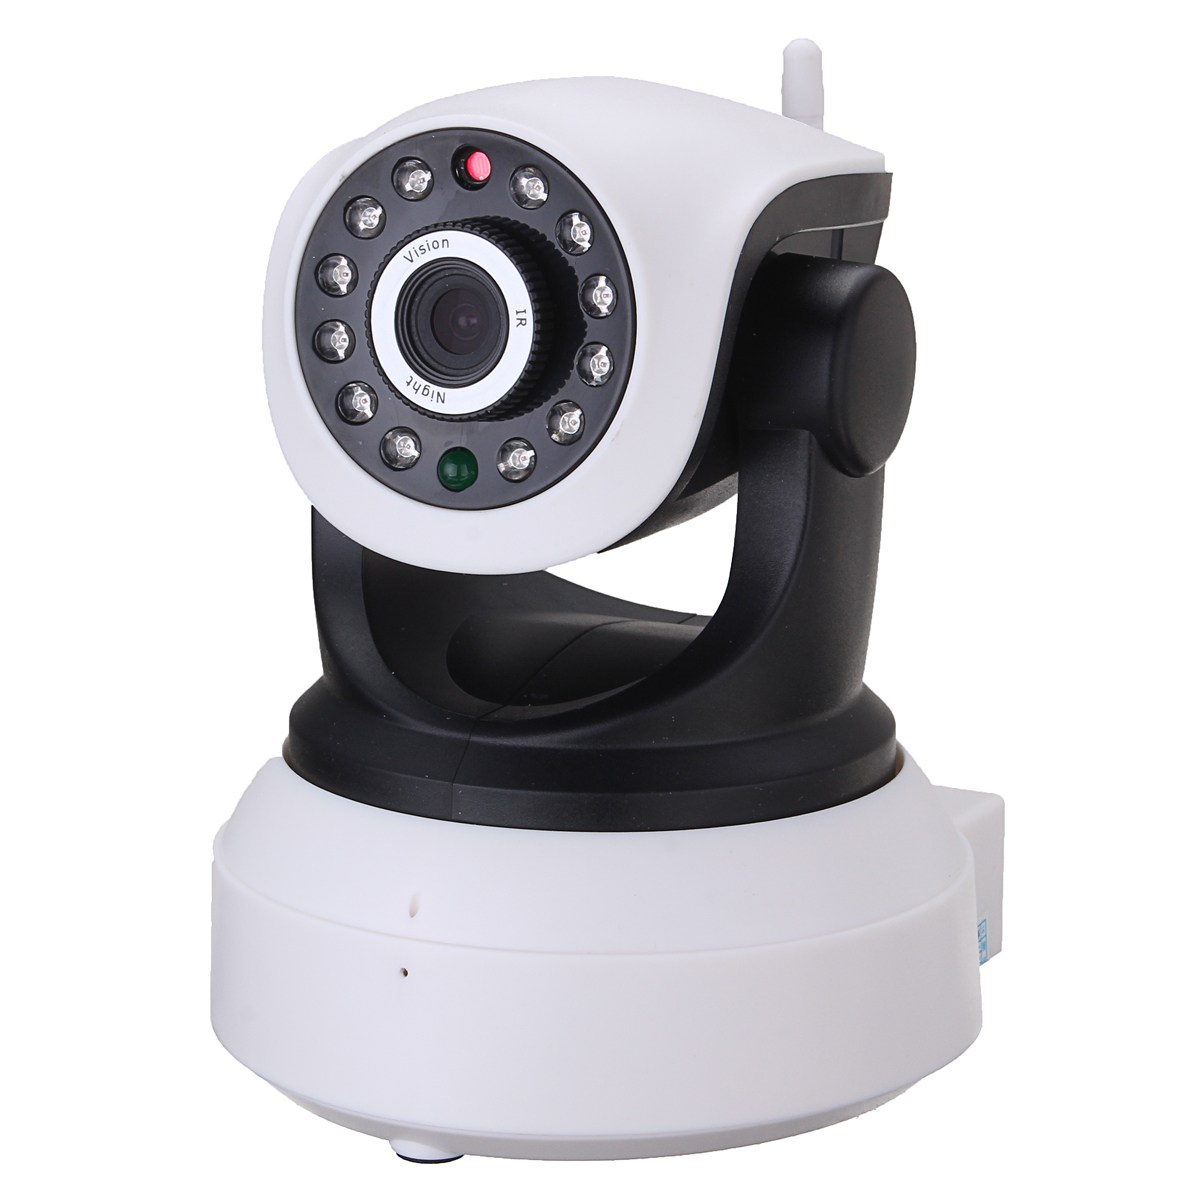 Safurance Wireless IP Camera 720P Pan Tilt Network Security Night Vision WiFi Webcam Home Safety Surveillance